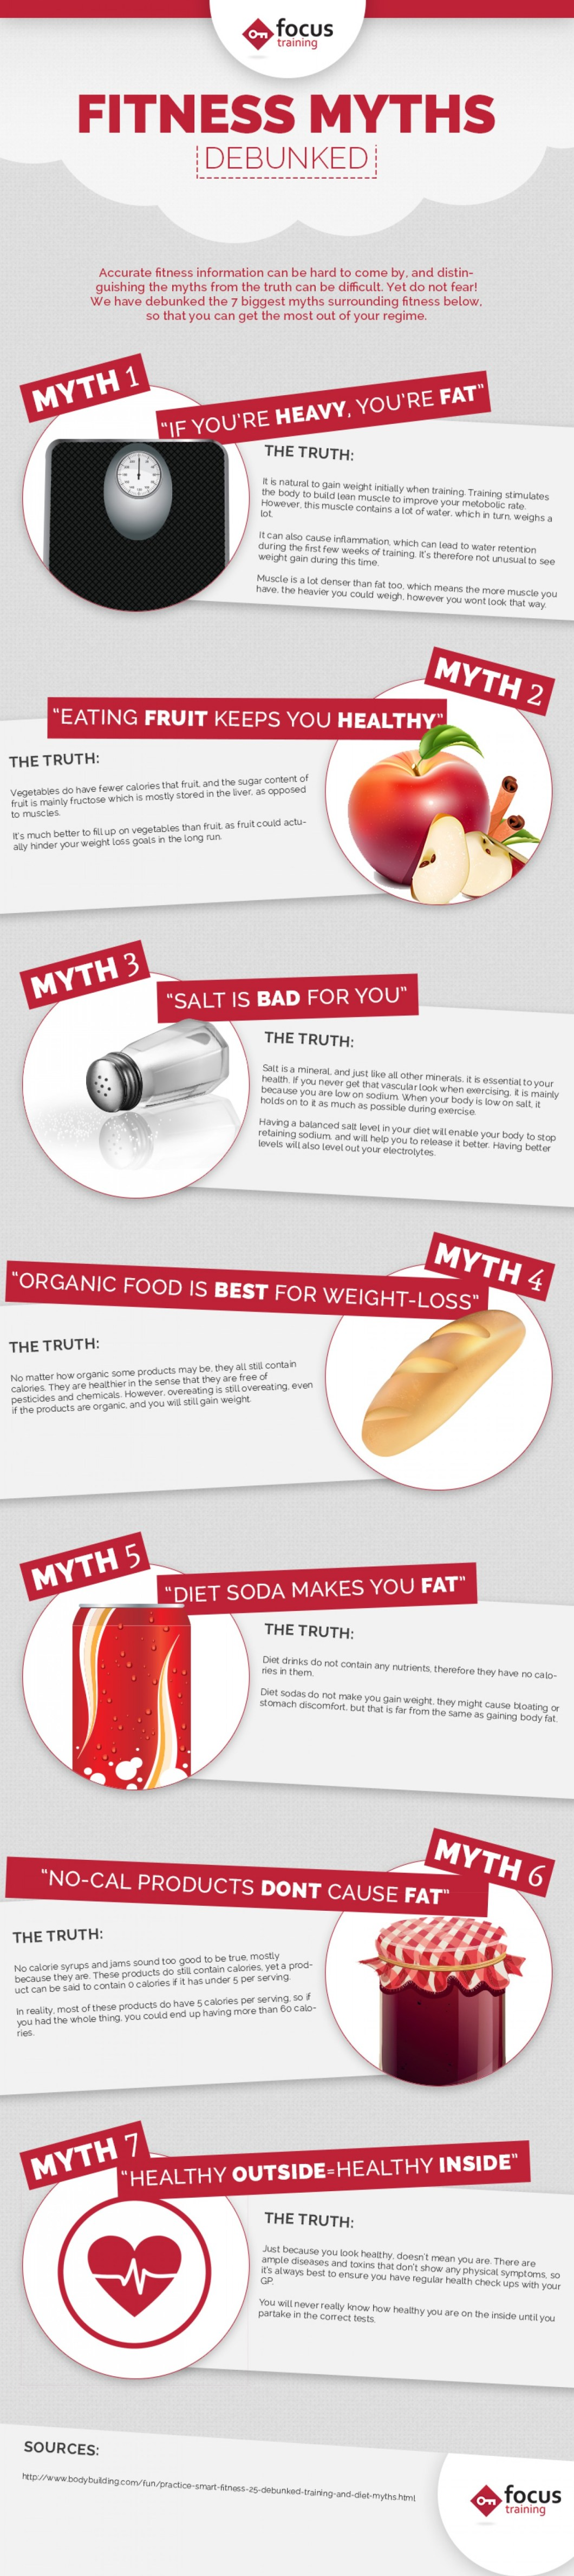 7 Fitness Myths and the Real Truth - Infographic